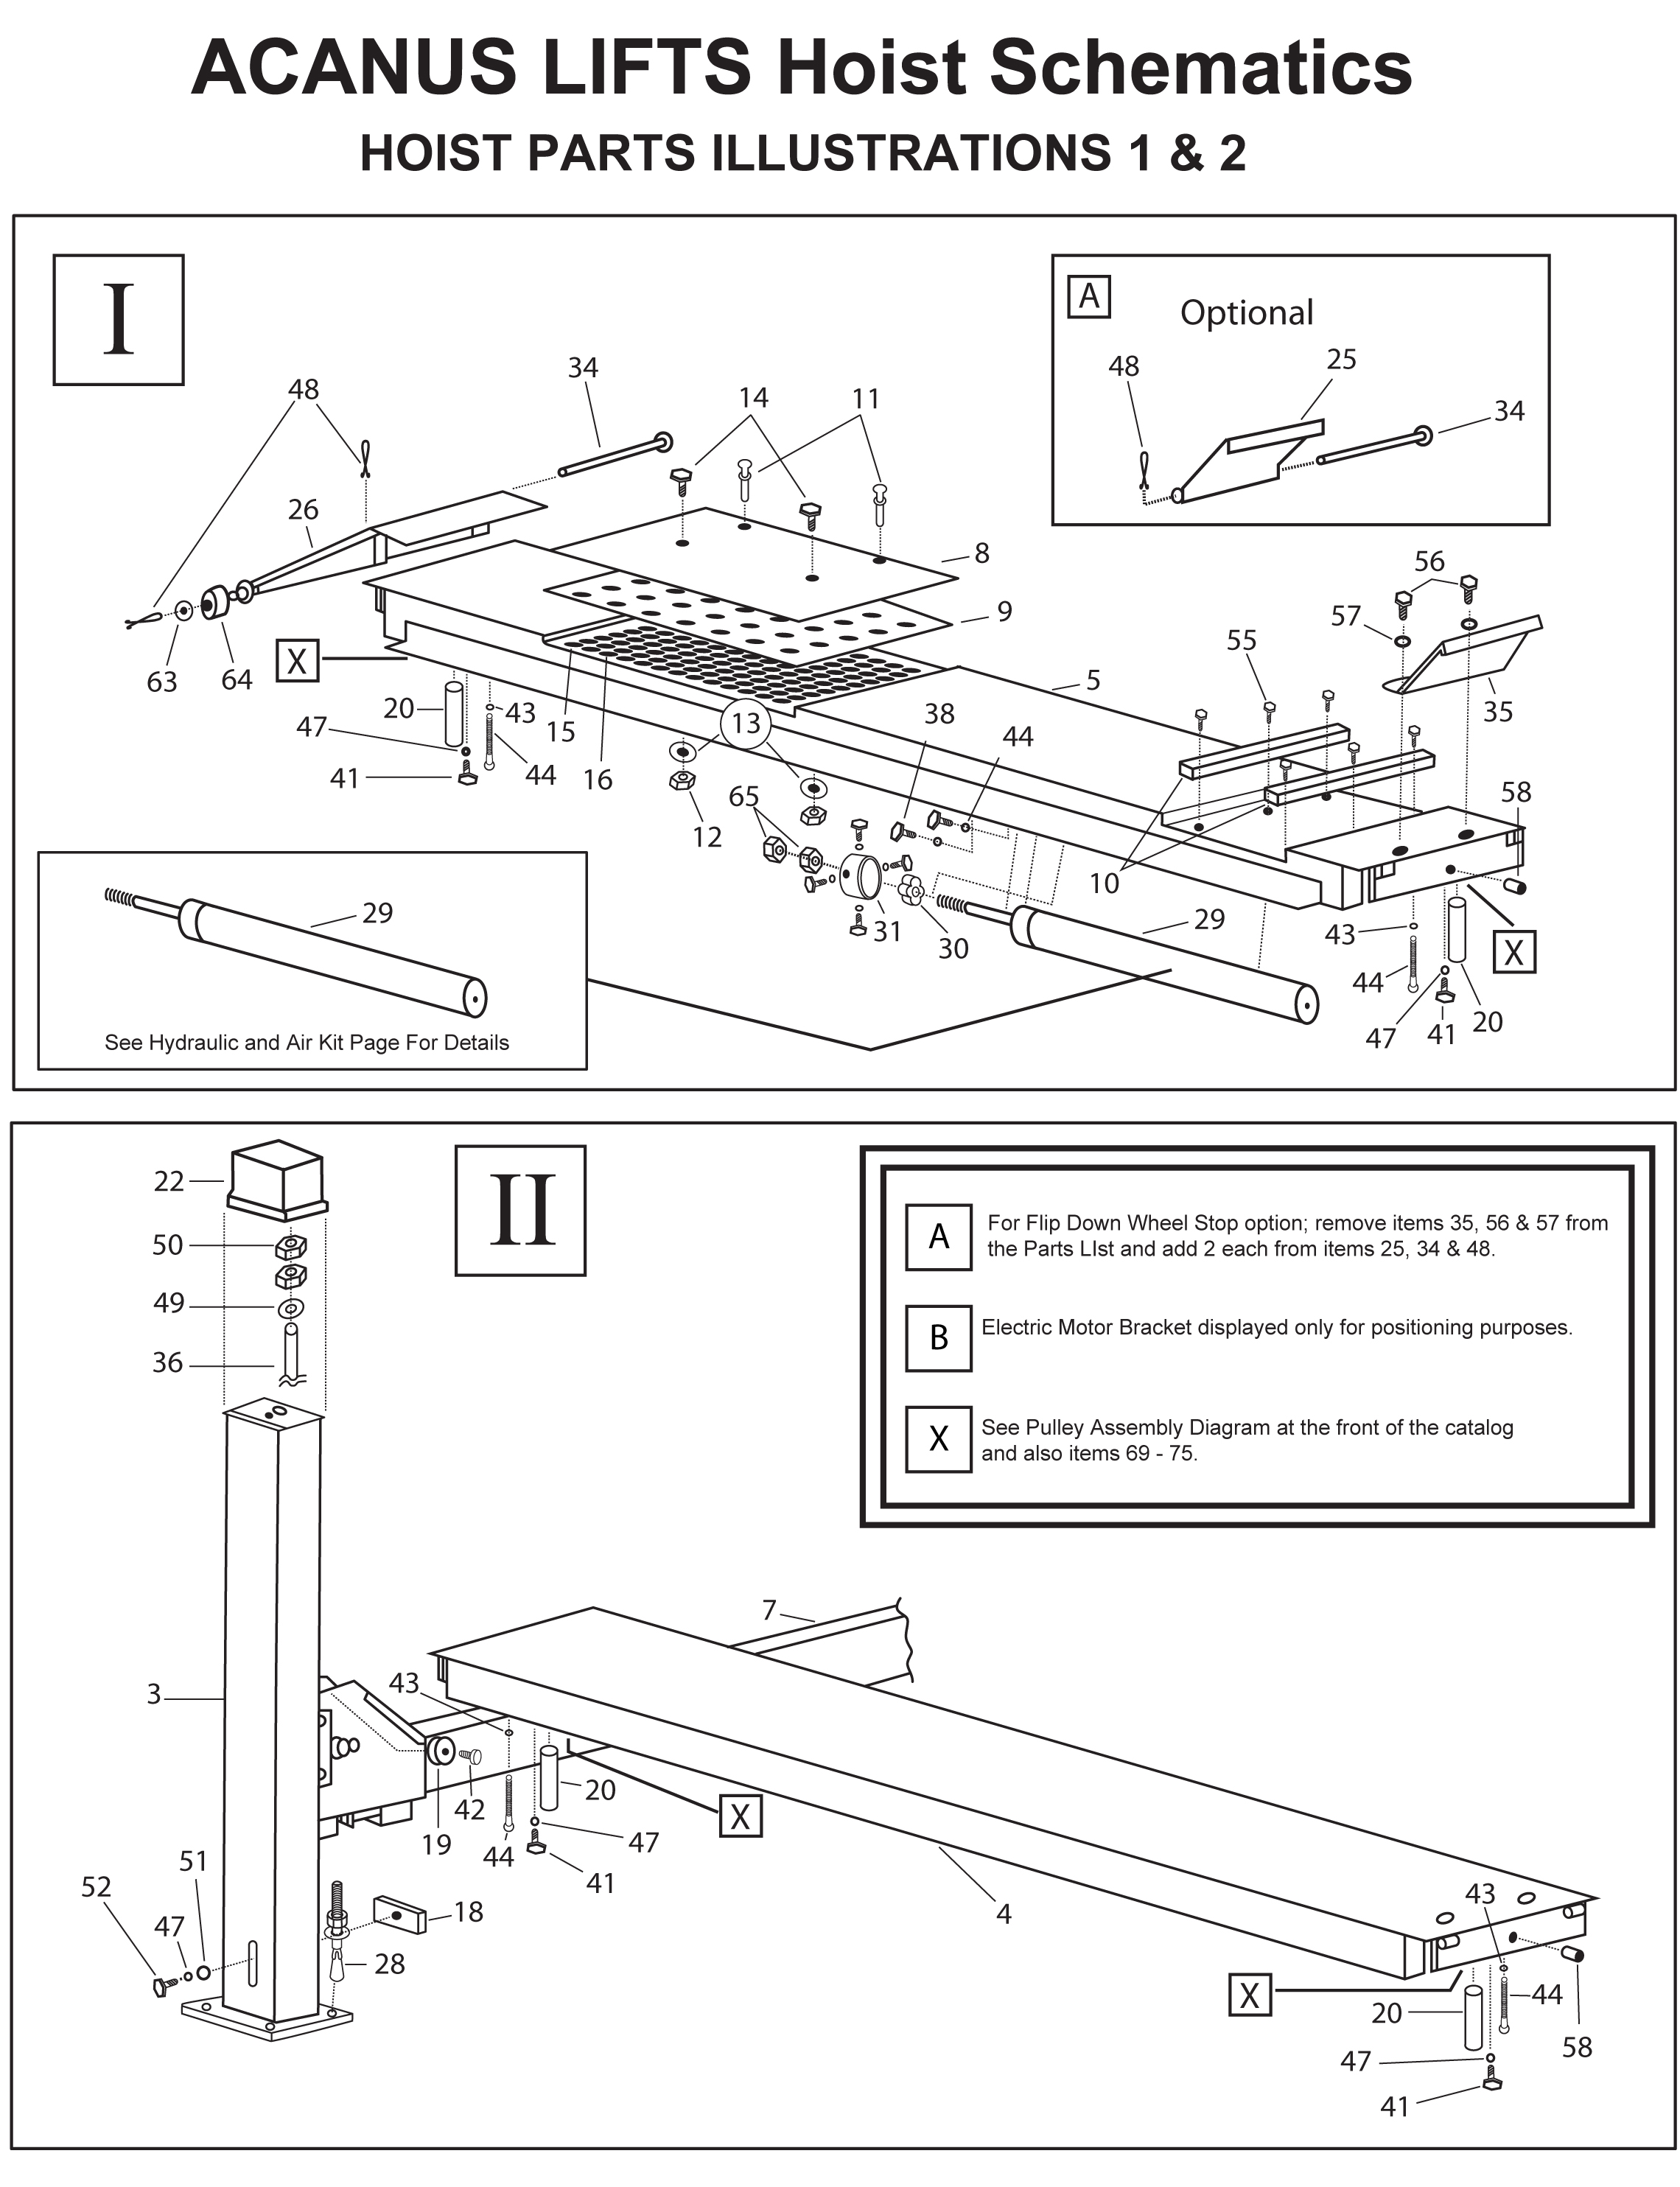 Overhead Crane Parts Diagram Schematics Cummins Qsm11 670 Marine Manual Ebook Rh A